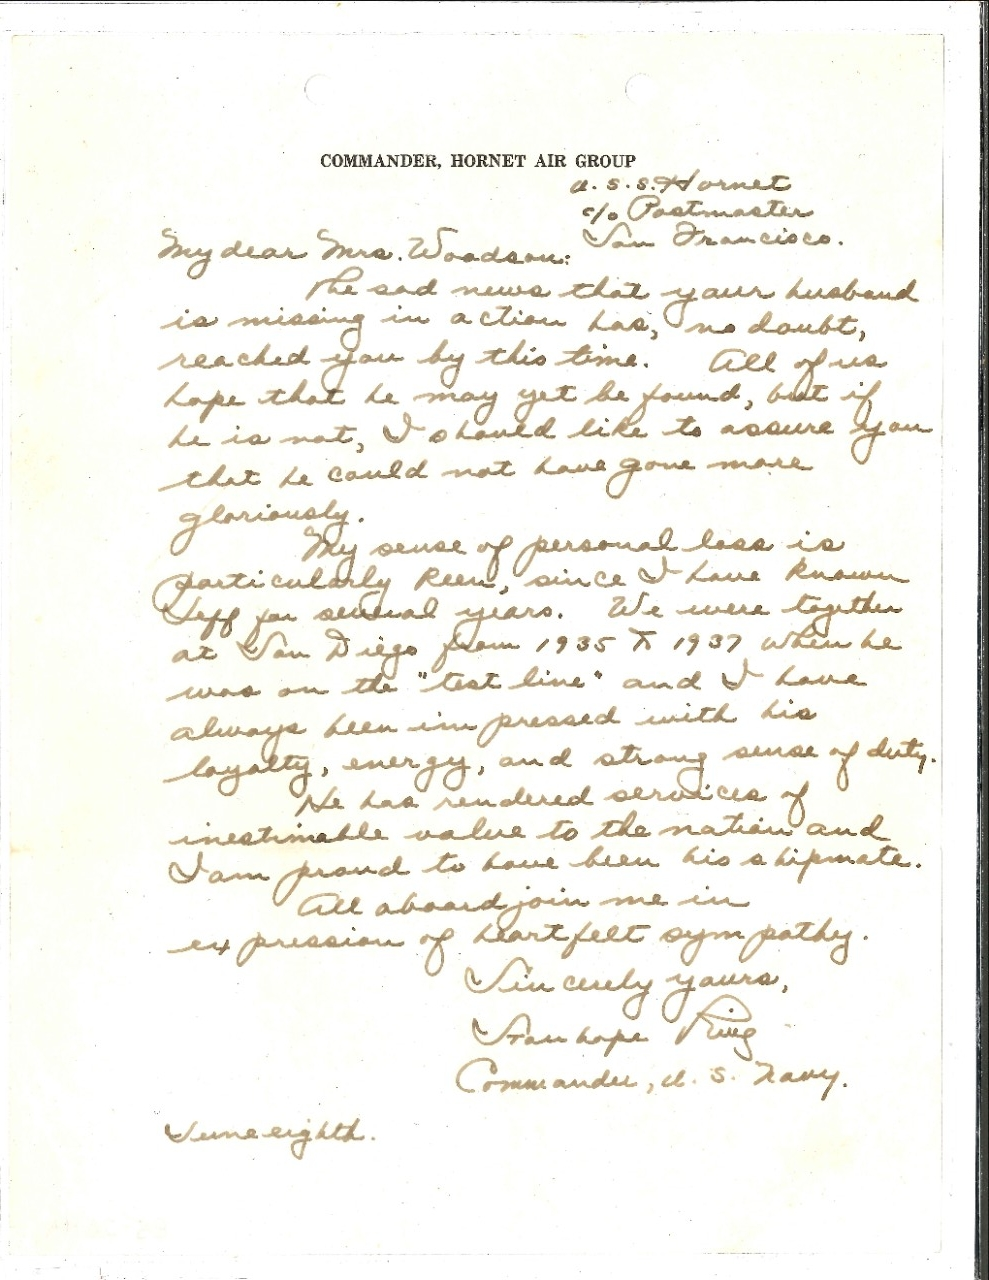 Handwritten letter to Mrs Woodson concerning her husband MIA